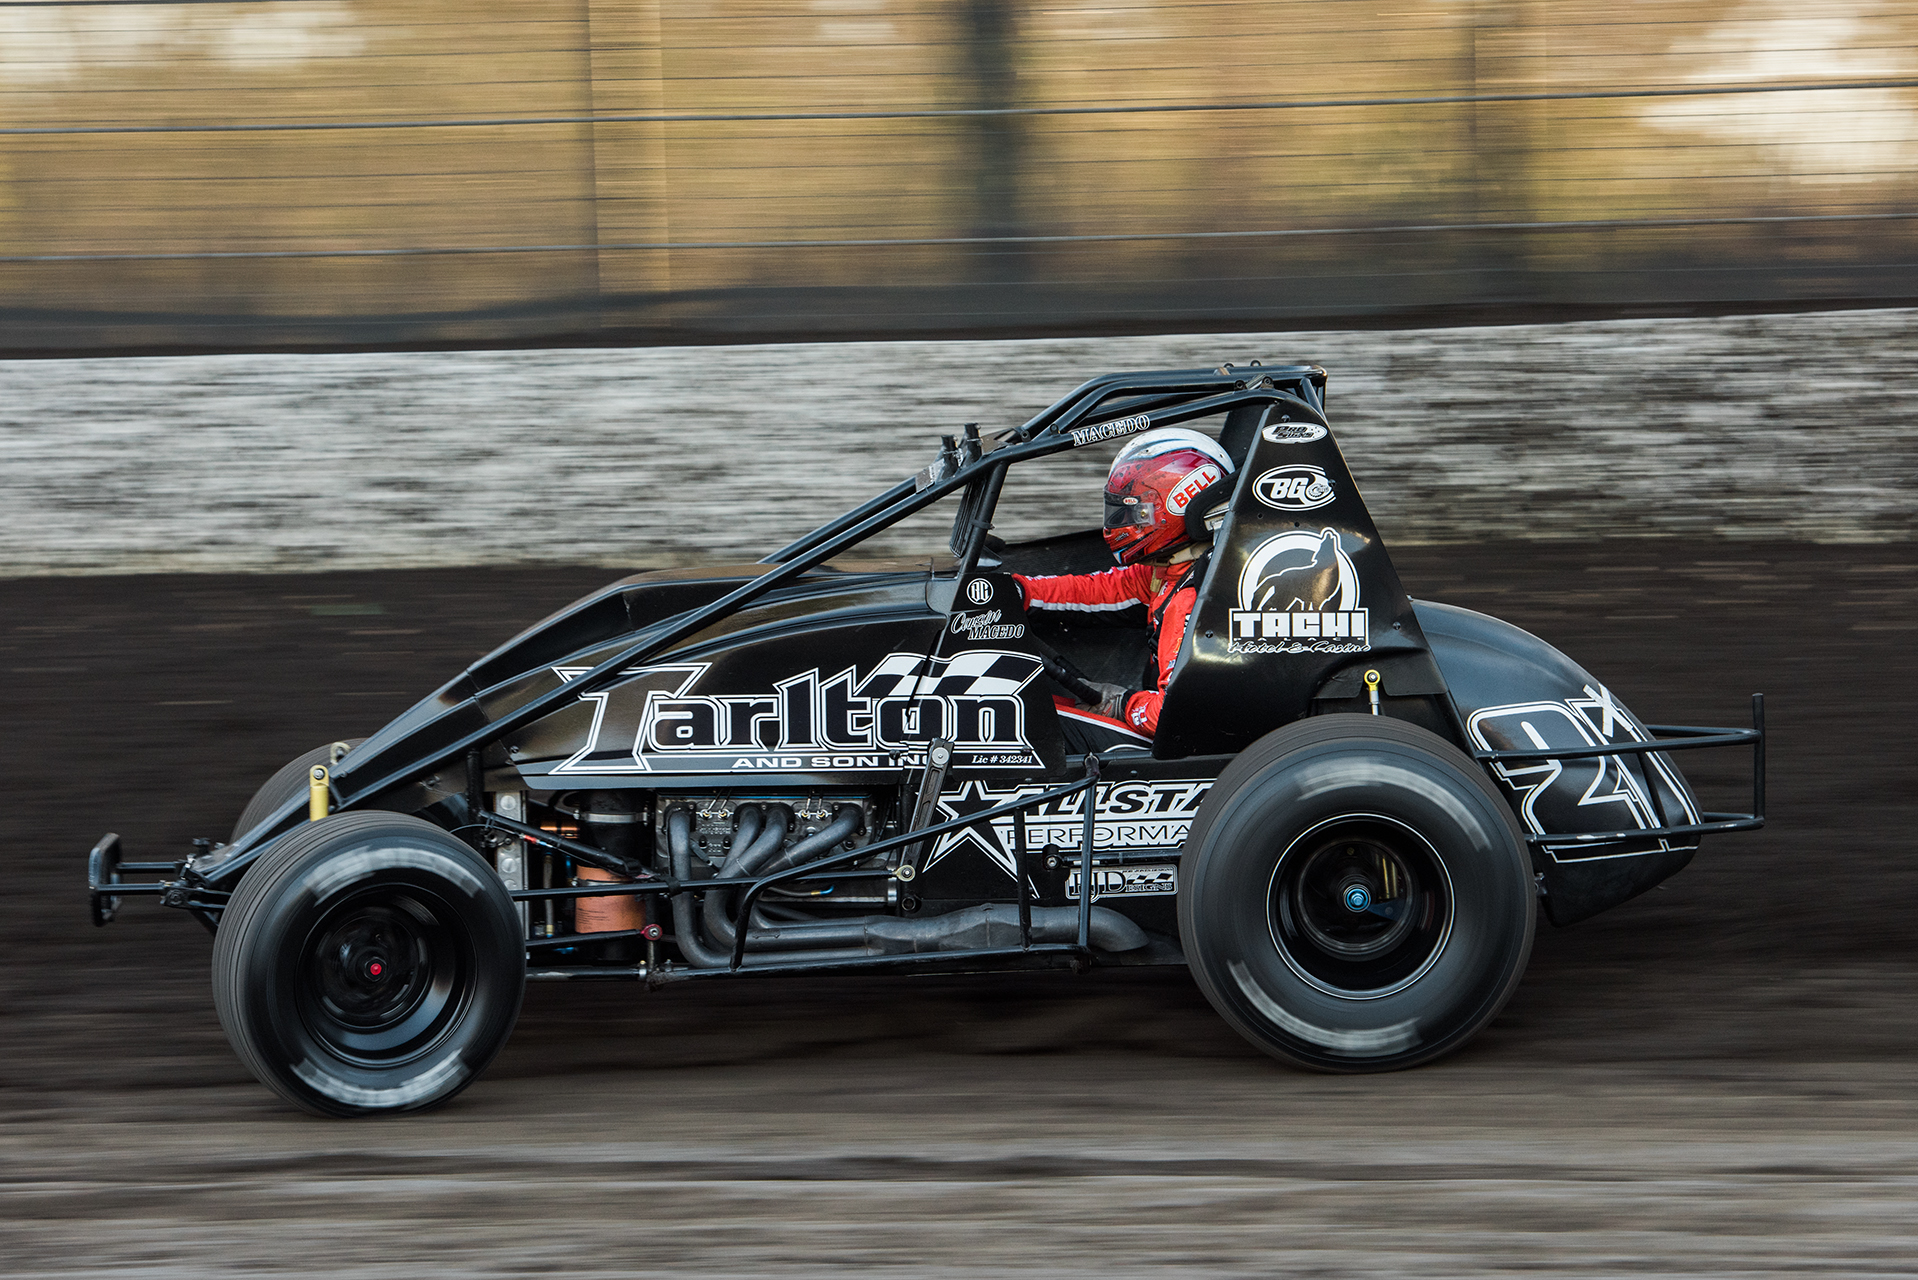 Wheeling the Tarlton wingless sprint during Calistoga's 2016 Vermeil Classic.